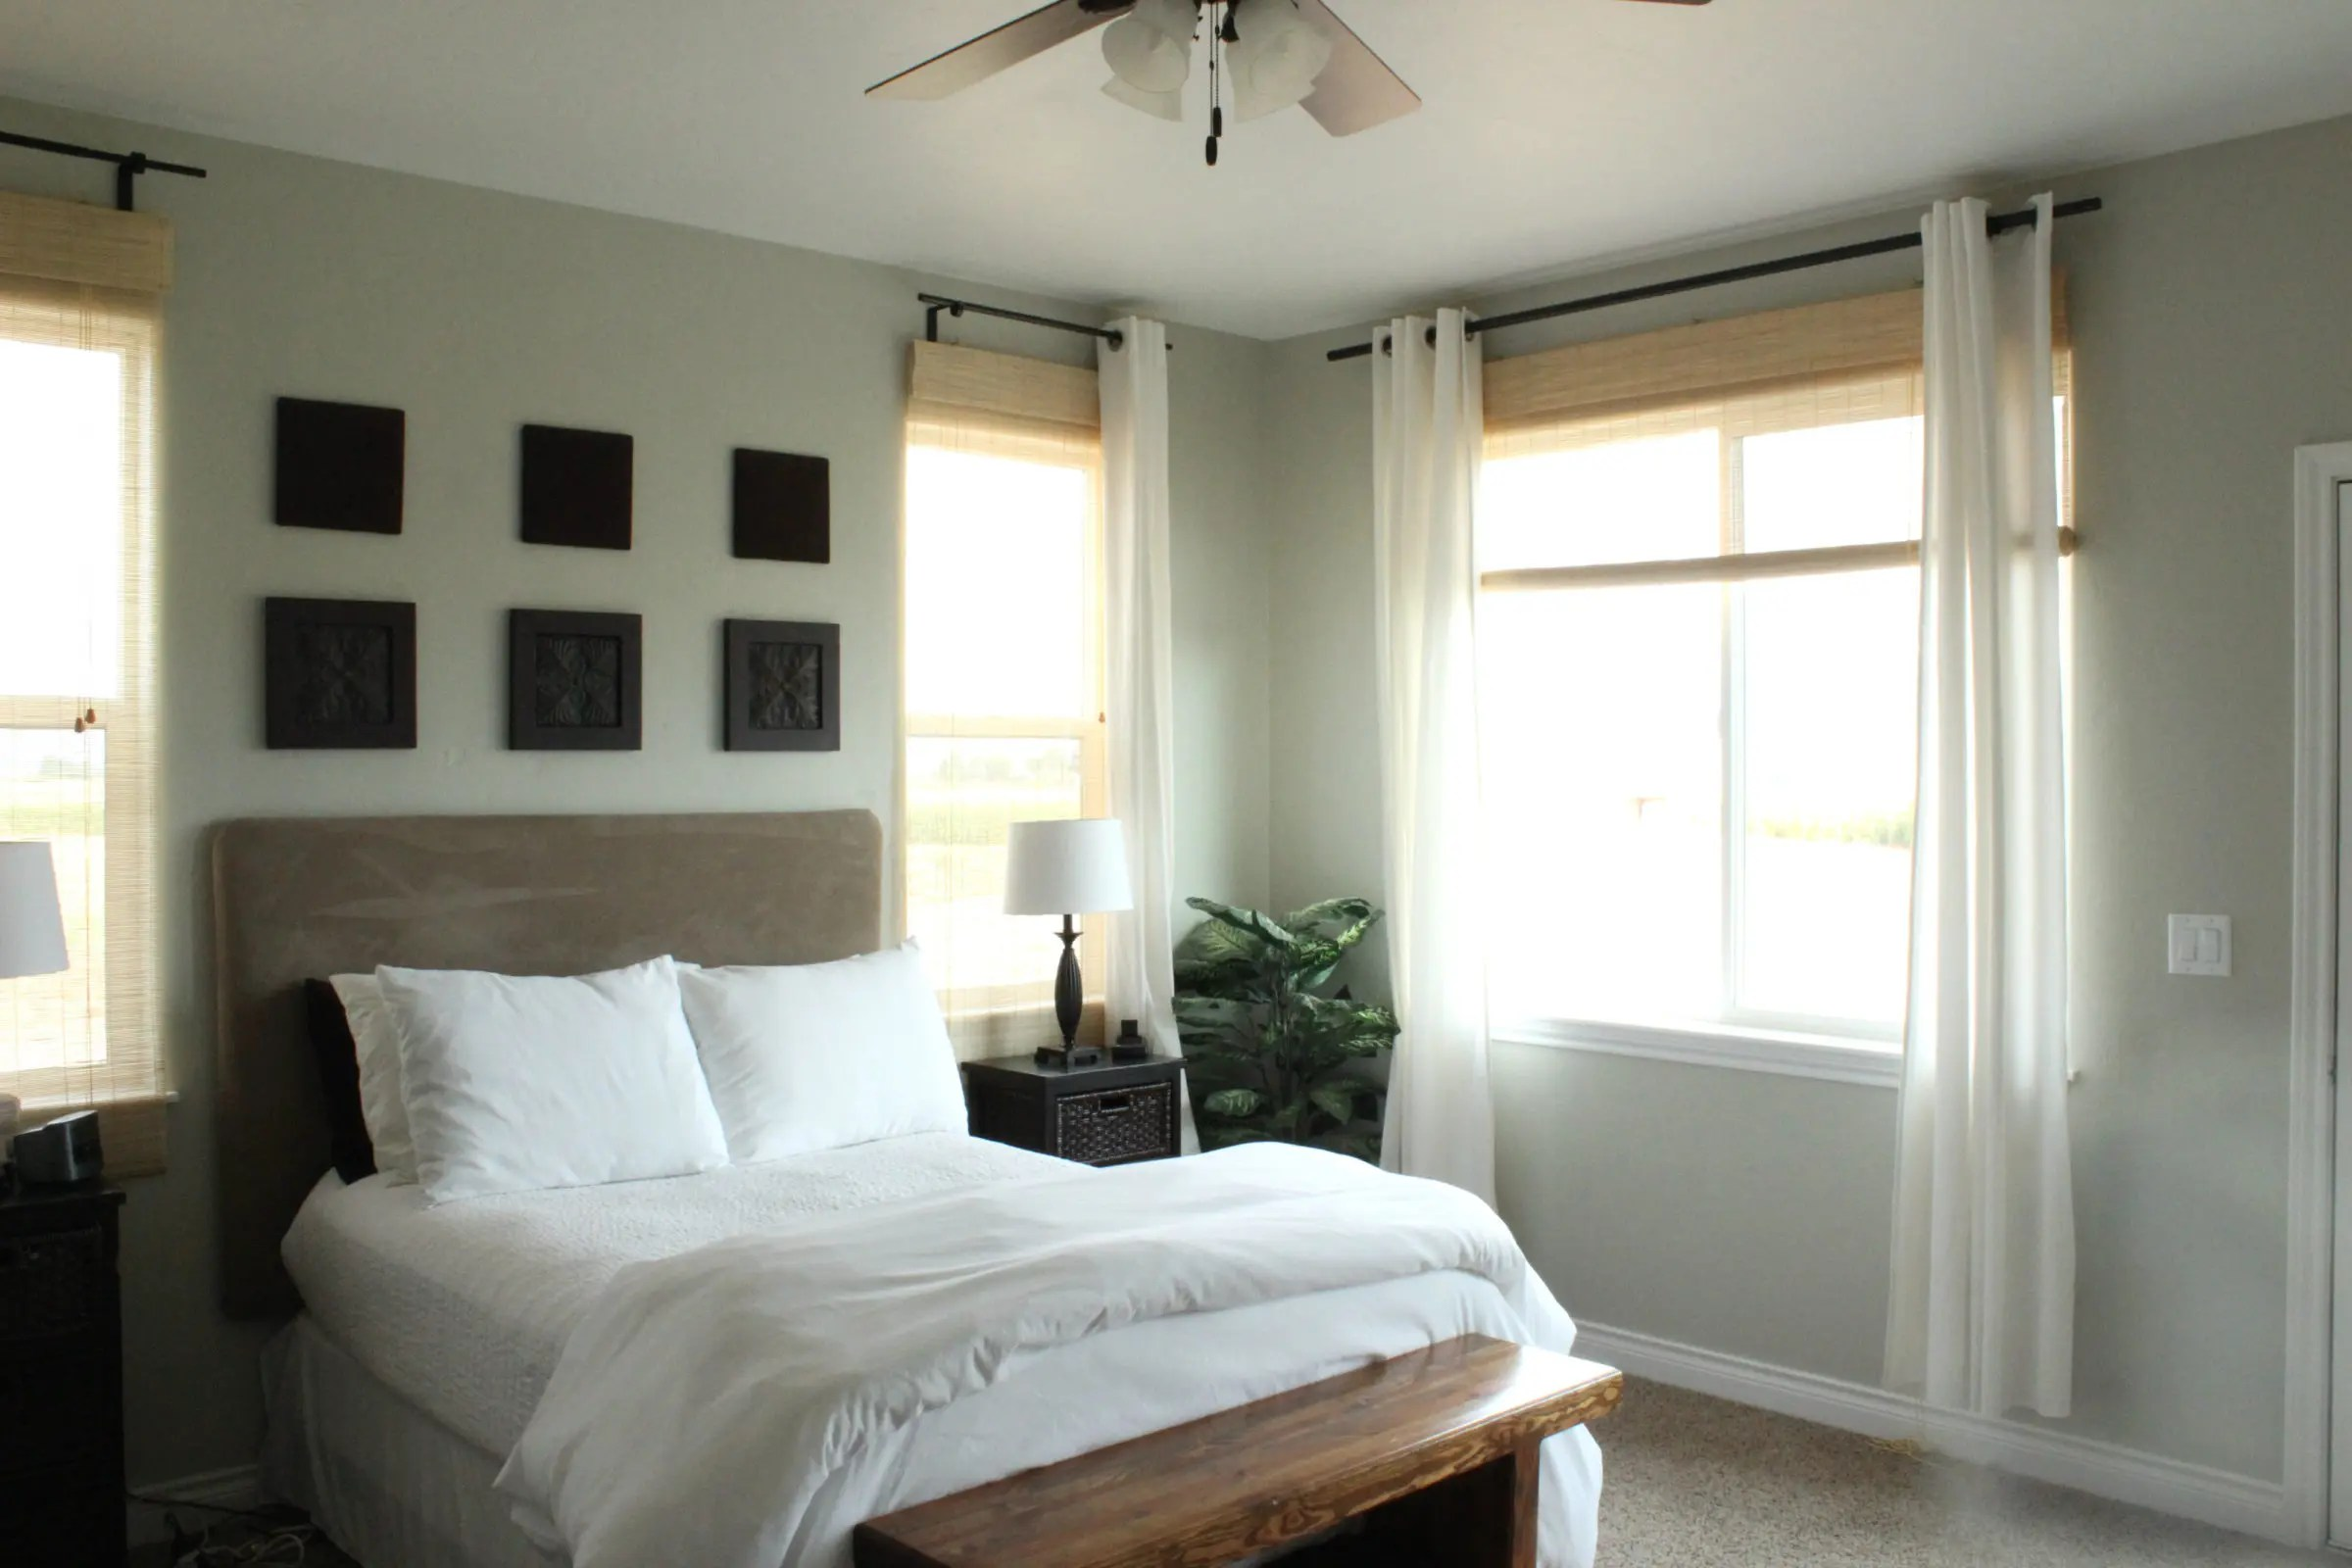 Master Bedroom Curtains - The Wood Grain Cottage on Master Bedroom Curtains  id=65376